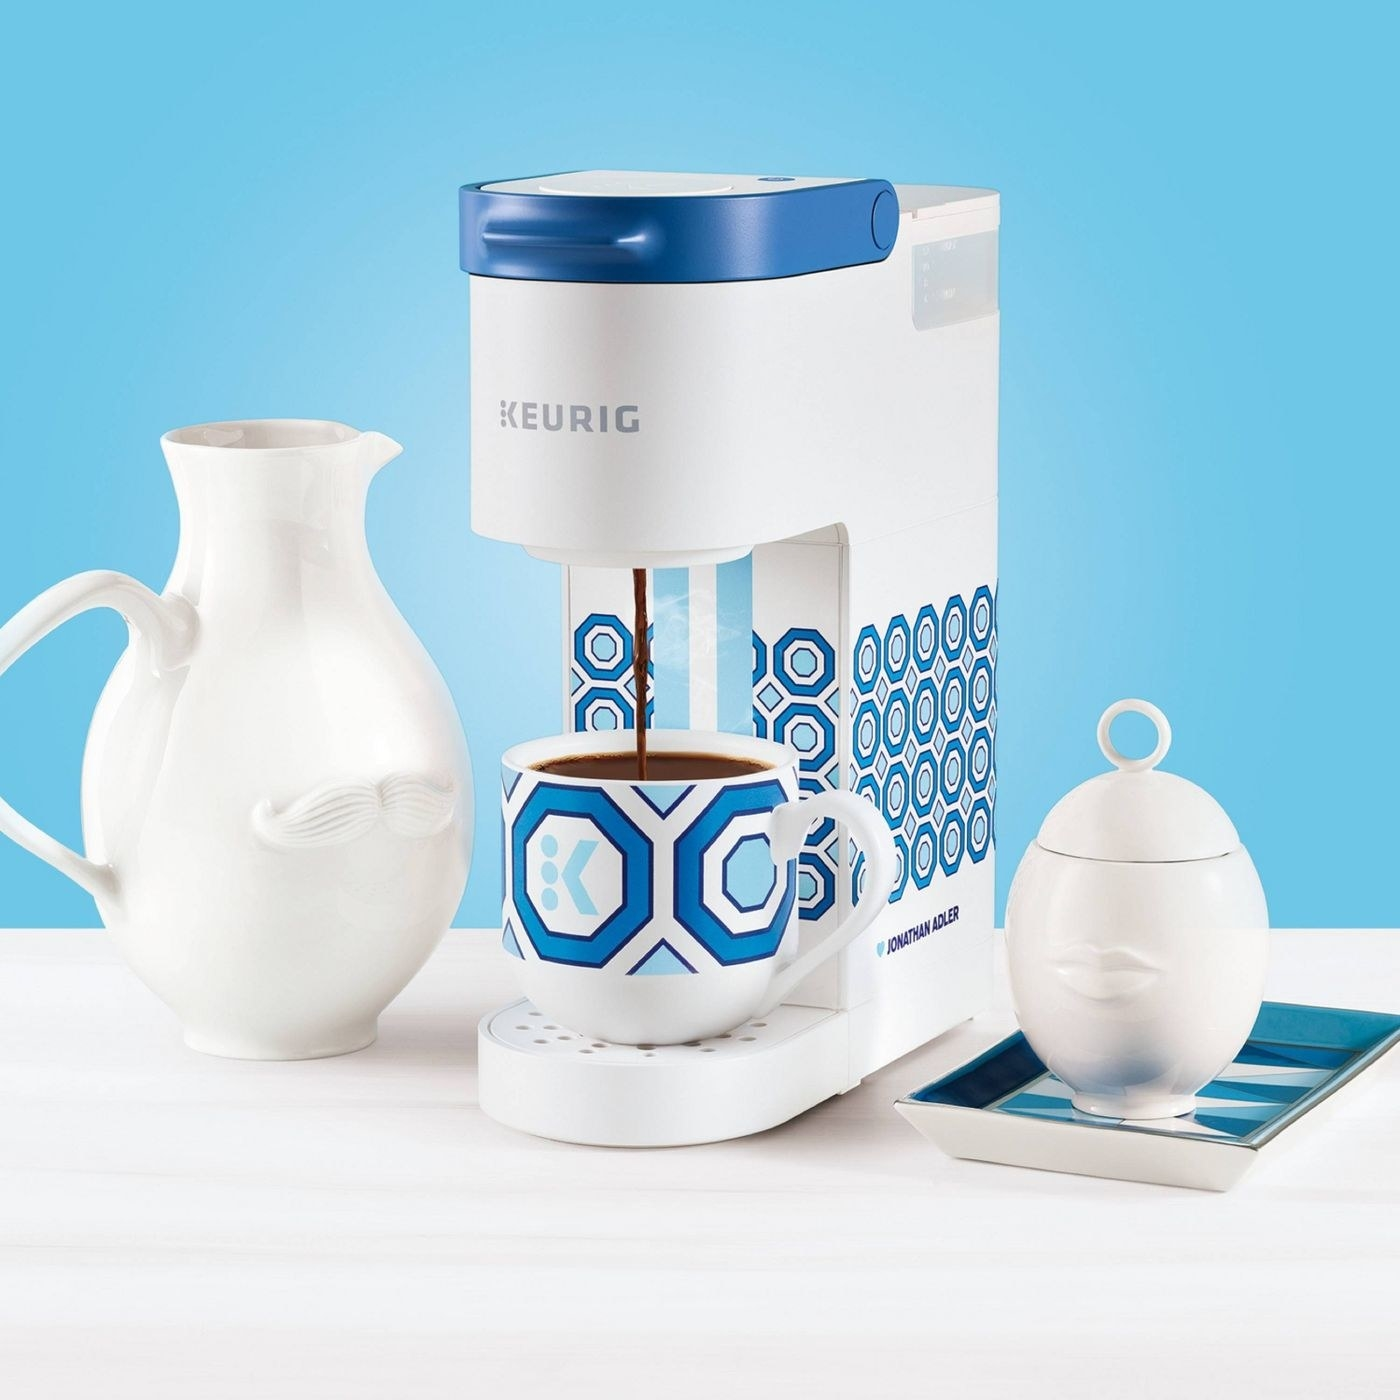 keurig machine with a blue jonathan adler design